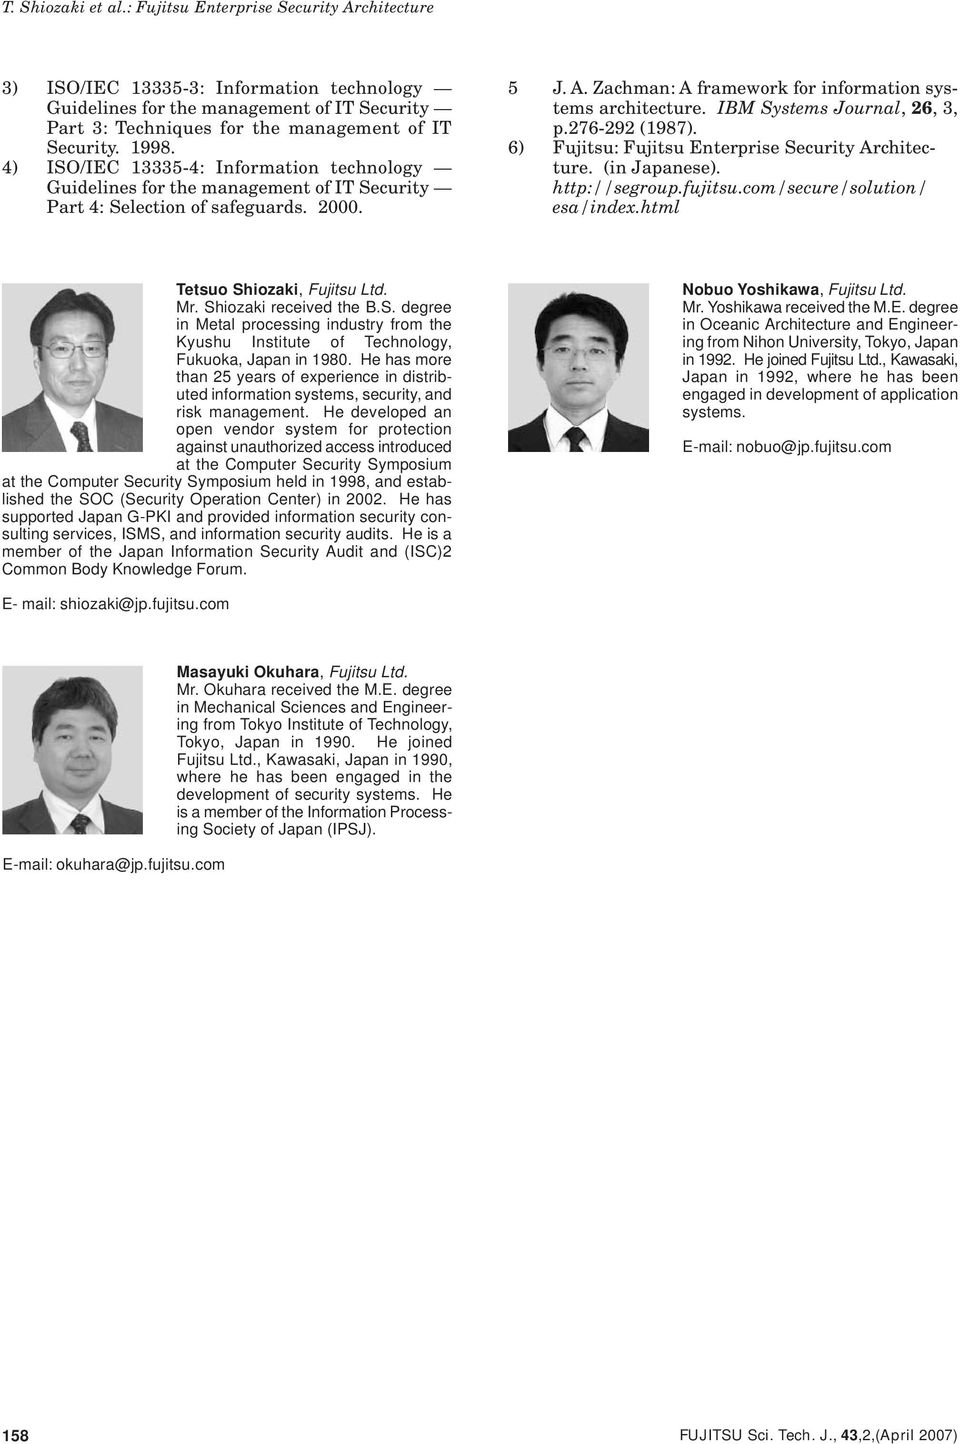 IBM Systems Journal, 26, 3, p.276-292 (1987). 6) Fujitsu: Fujitsu Enterprise Security Architecture. (in Japanese). http://segroup.fujitsu.com/secure/solution/ esa/index.